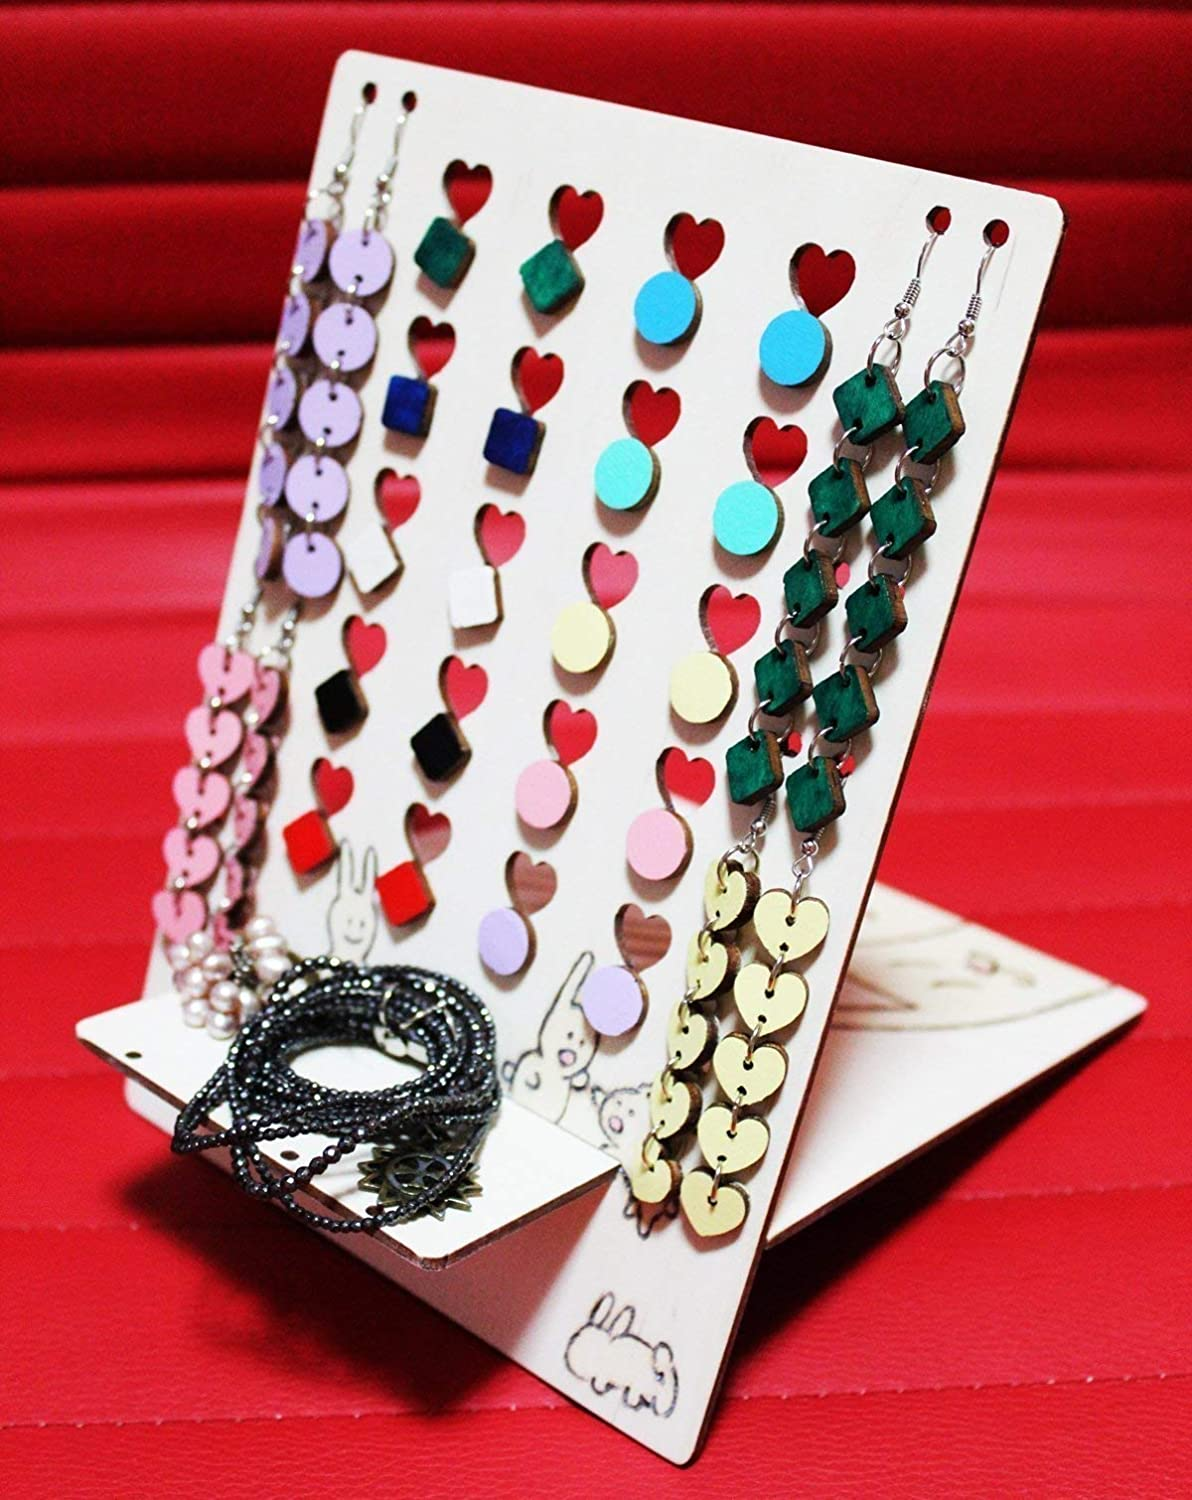 Beautiful 24-Pair Earring Organizer for Studs, Drop and Dangle Earrings with Romantic Designs Hand-Etched and Painted on Both Sides, Cute Handmade Gift for Jewellery Lovers